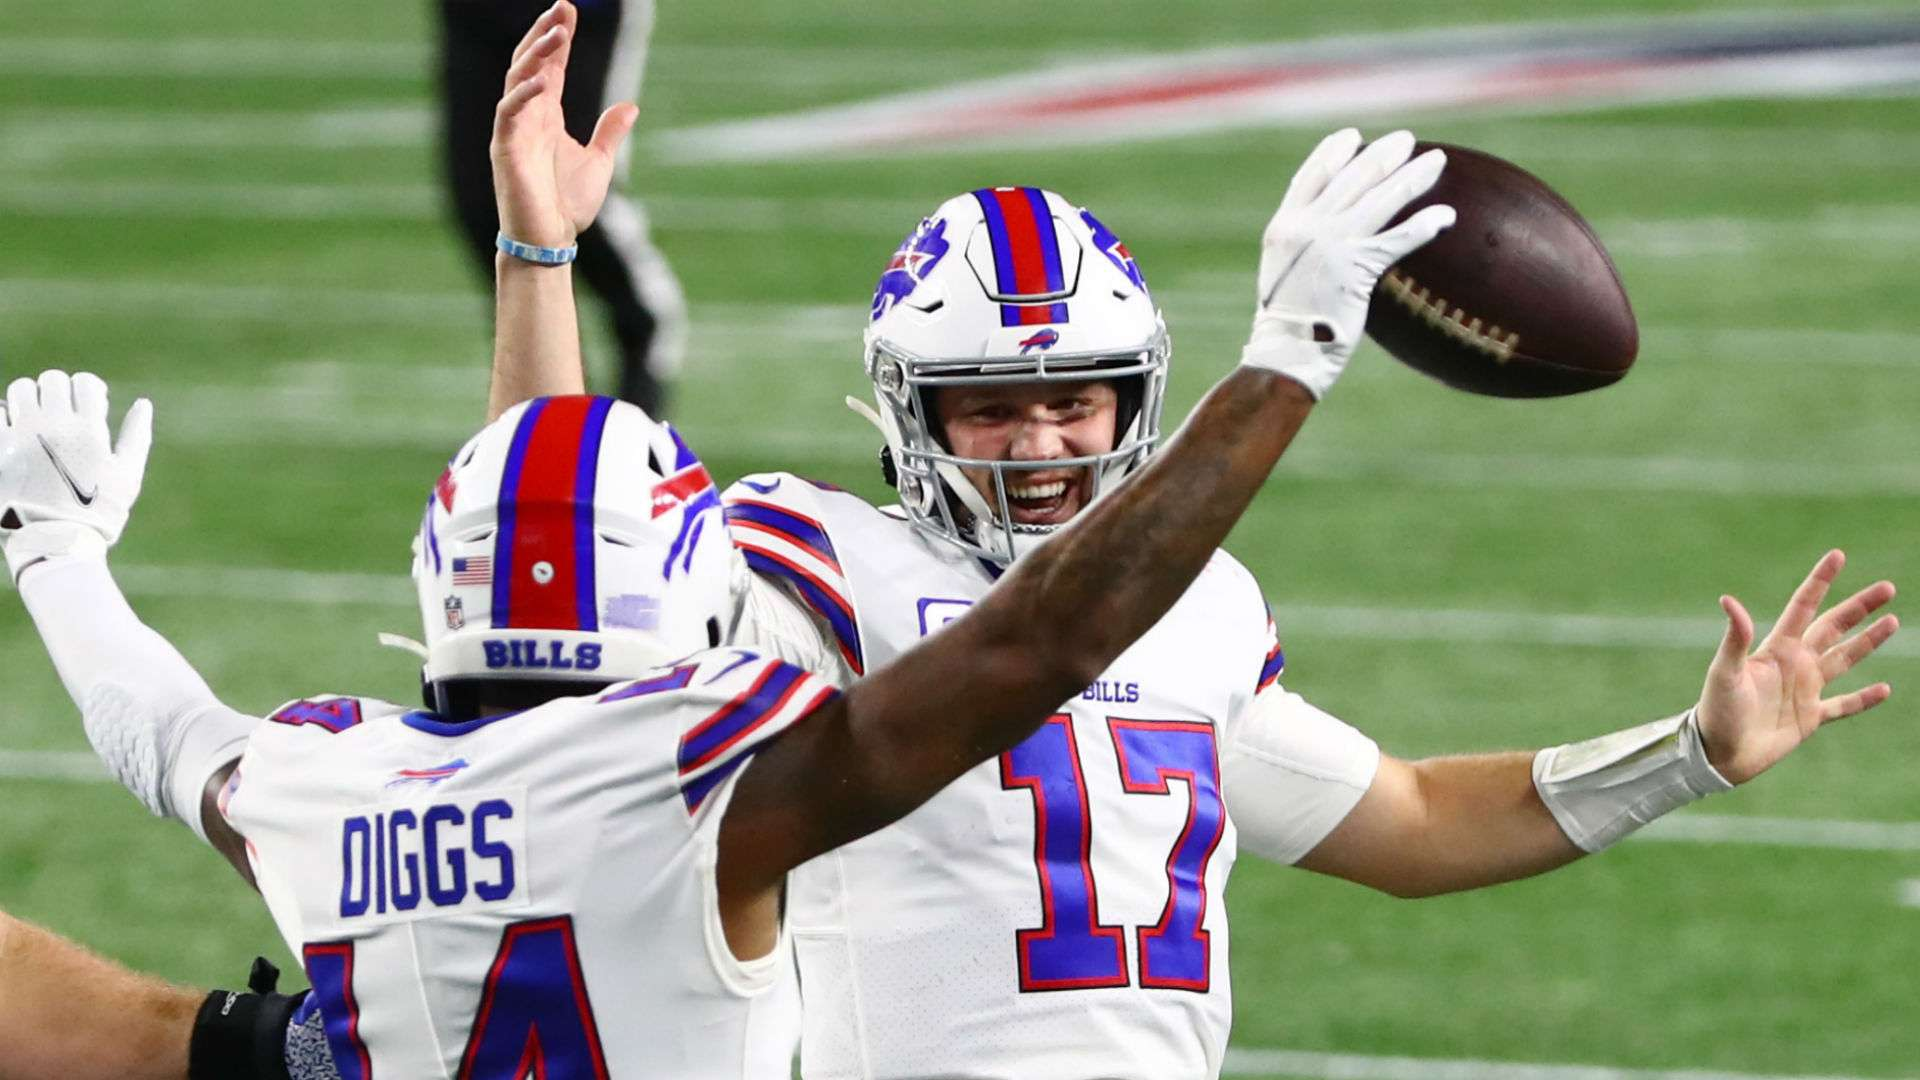 Nfl Playoff Bracket 2021 Wild Card Playoff Matchups Schedule For Afc Nfc Sporting News